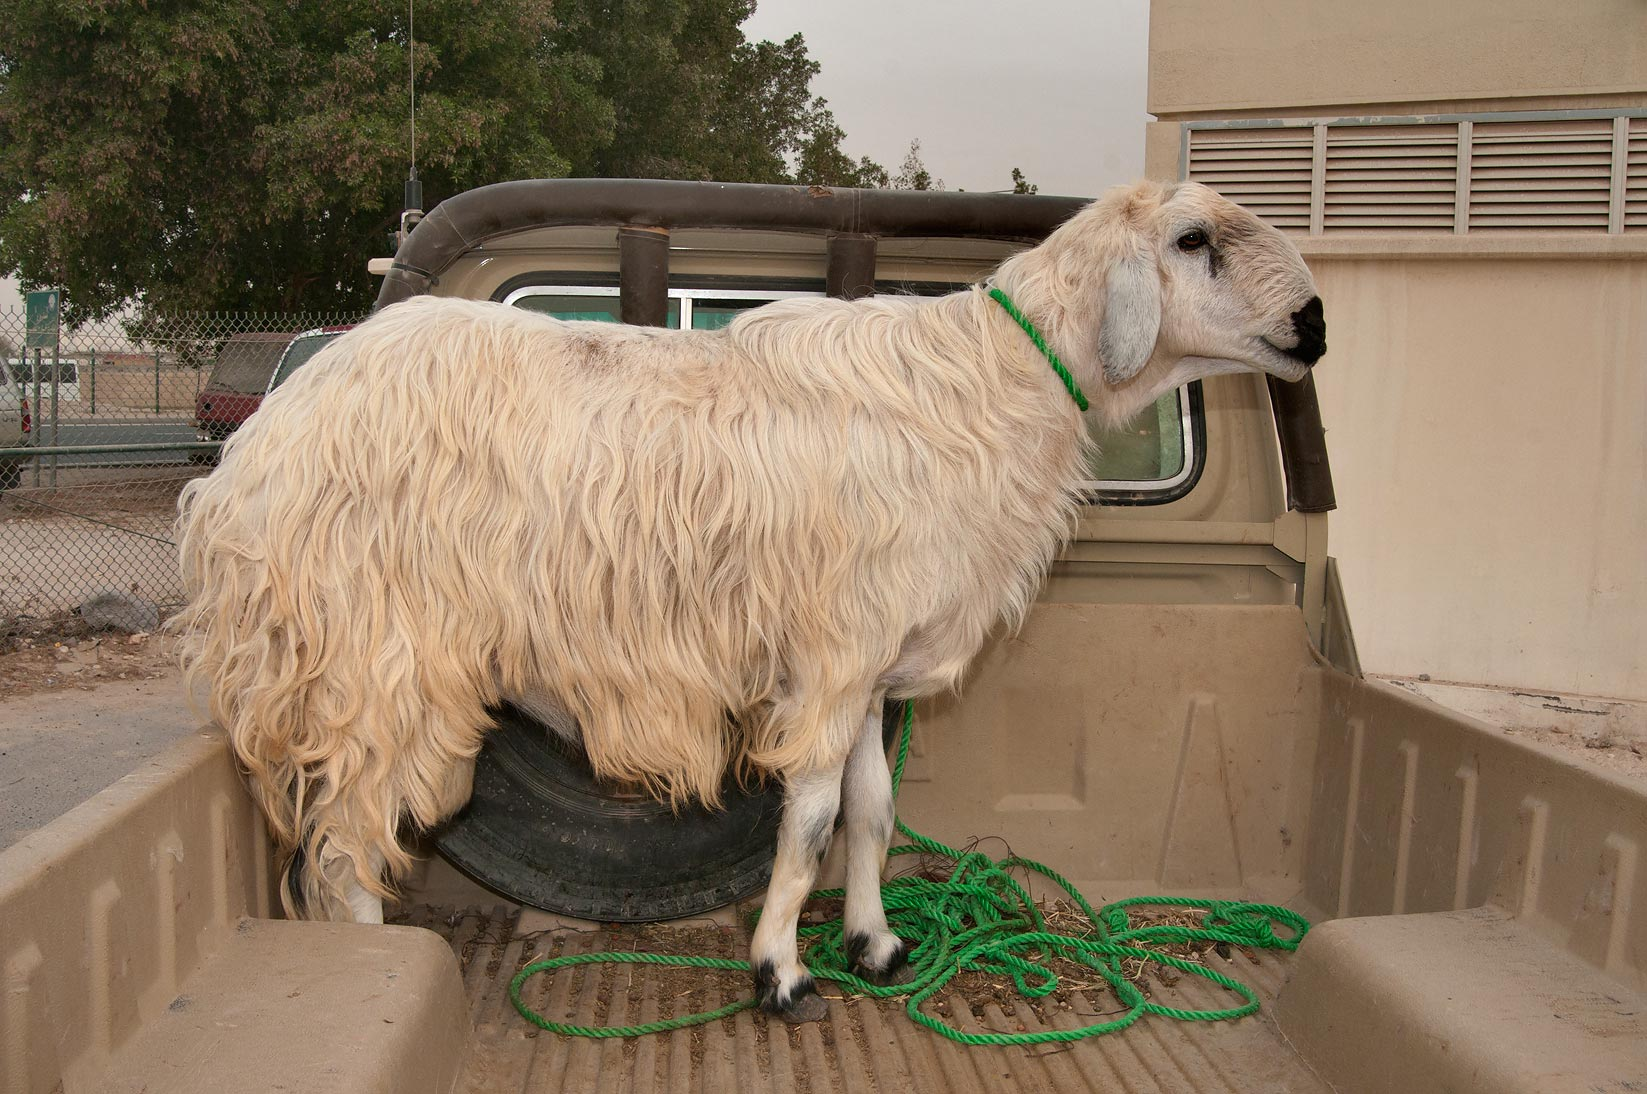 Goat in a truck in Sheep Market, Wholesale Markets area. Doha, Qatar